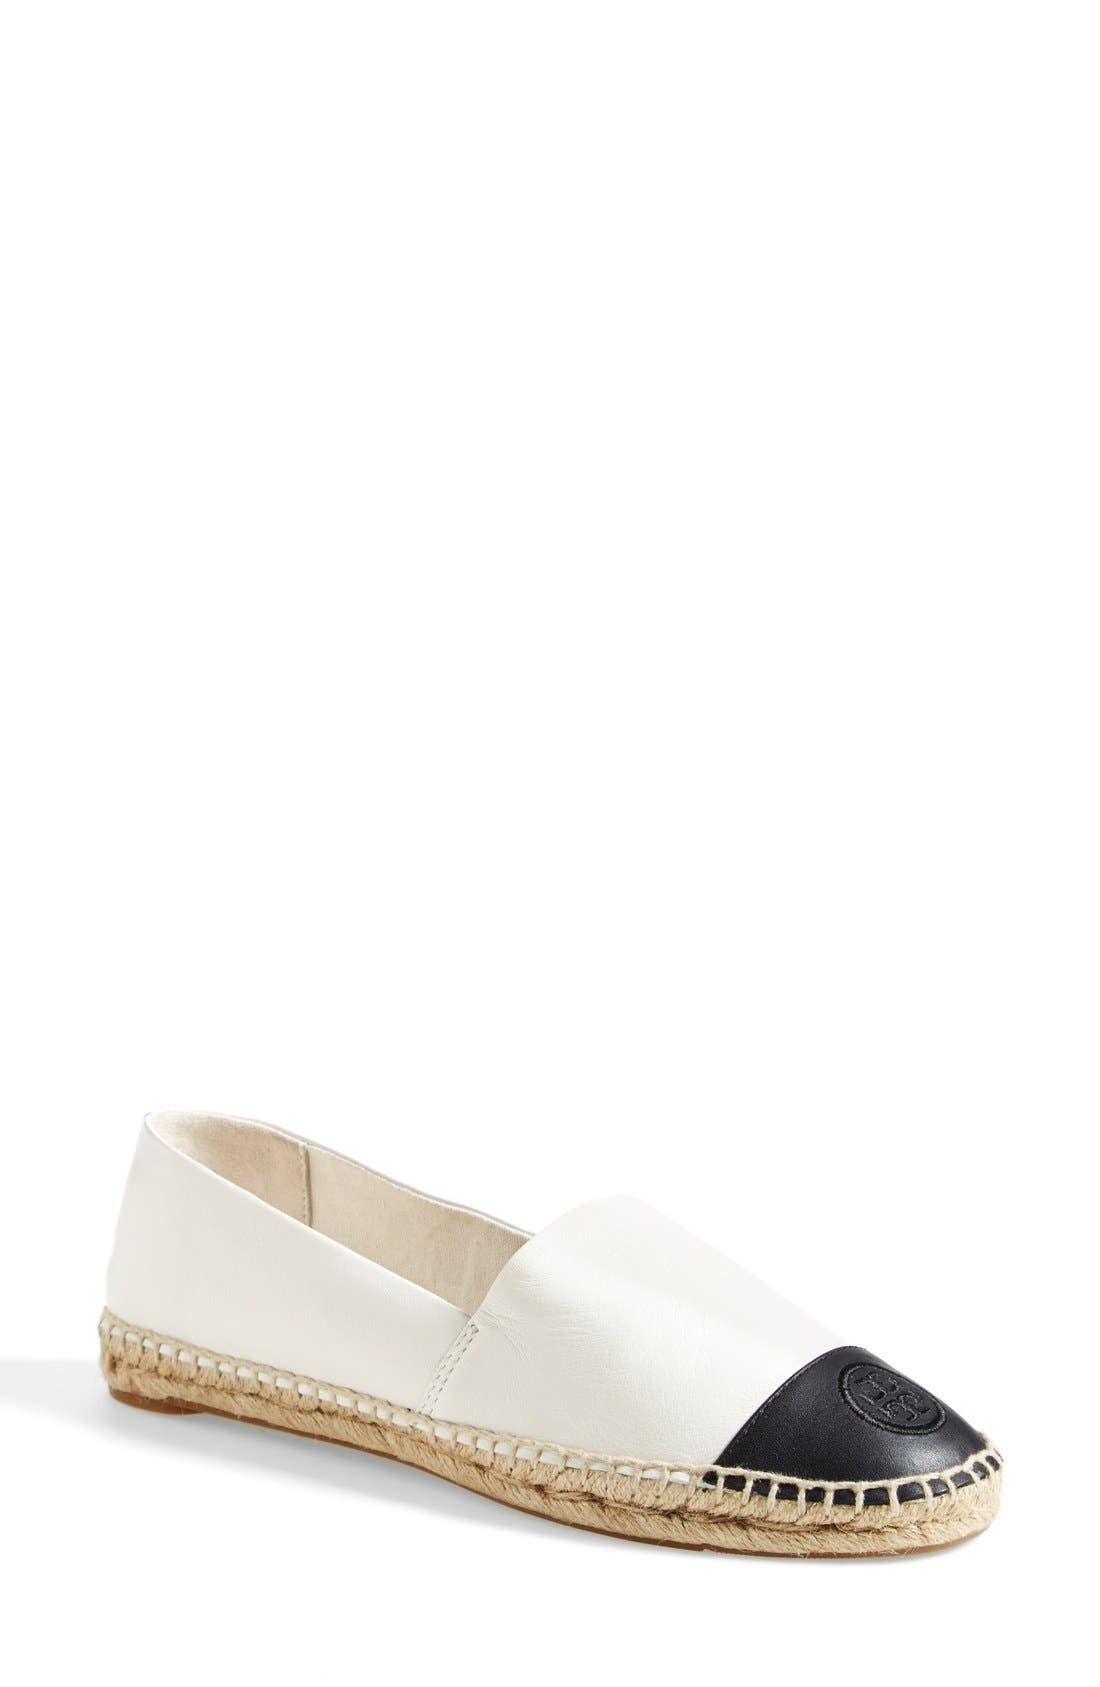 TORY BURCH, Colorblock Espadrille Flat, Main thumbnail 1, color, IVORY/ BLACK